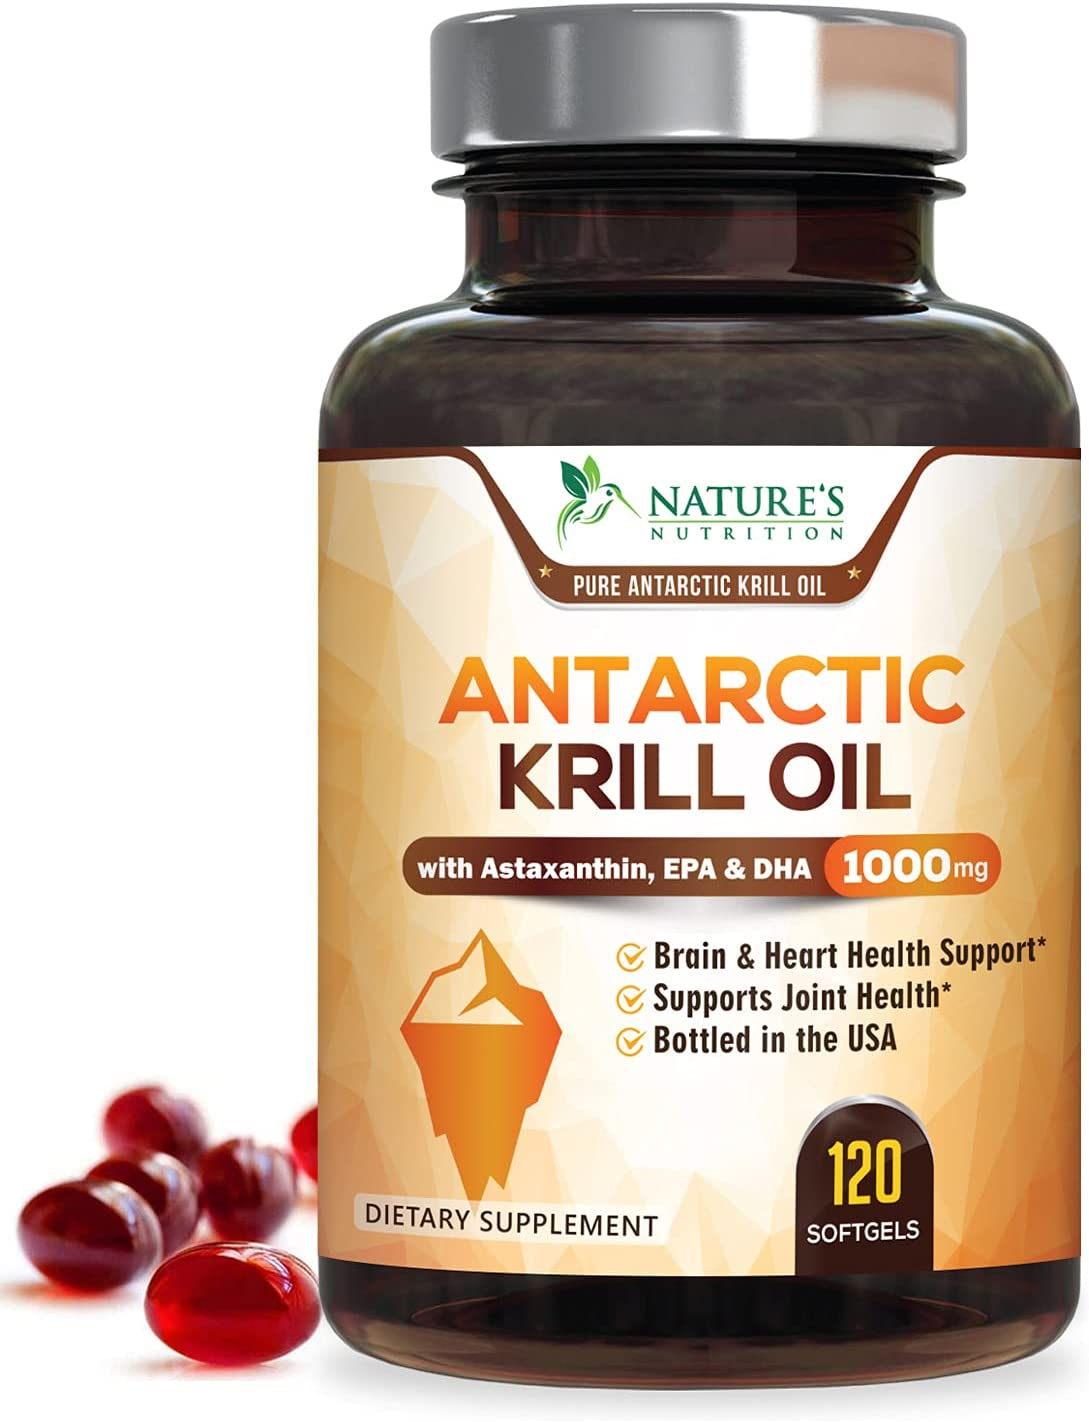 Antarctic Krill Oil Great 2021 model interest Supplement 1000mg Tested O Purity with